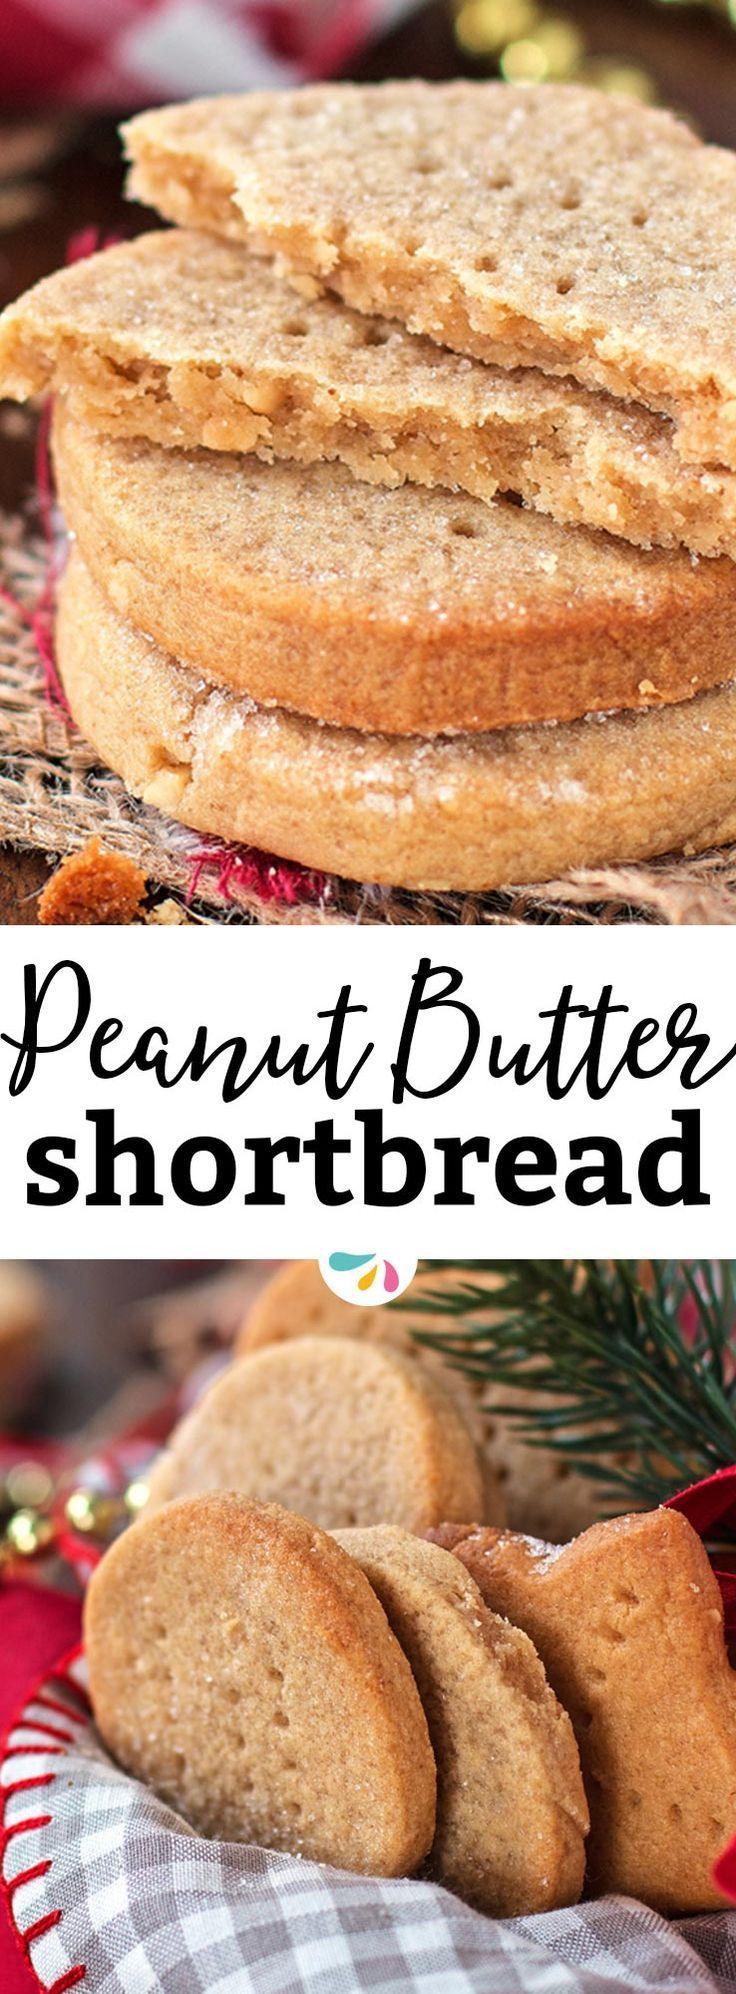 Are you looking for an easy but unique Christmas cookie? This Peanut Butter Shortbread recipe is your winner! It's crumbly and buttery like traditional Scottish shortbread, but with flavours of peanut butter and honey all the way through. The best twist on a classic old favorite! | #recipes #recipeoftheday #christmas #christmasfood #christmasrecipes #cookies #cookierecipes #food #foodblogger #yum #yumyum #yummyfood #christmasgifts #diygifts #foodgifts #baking #holidays